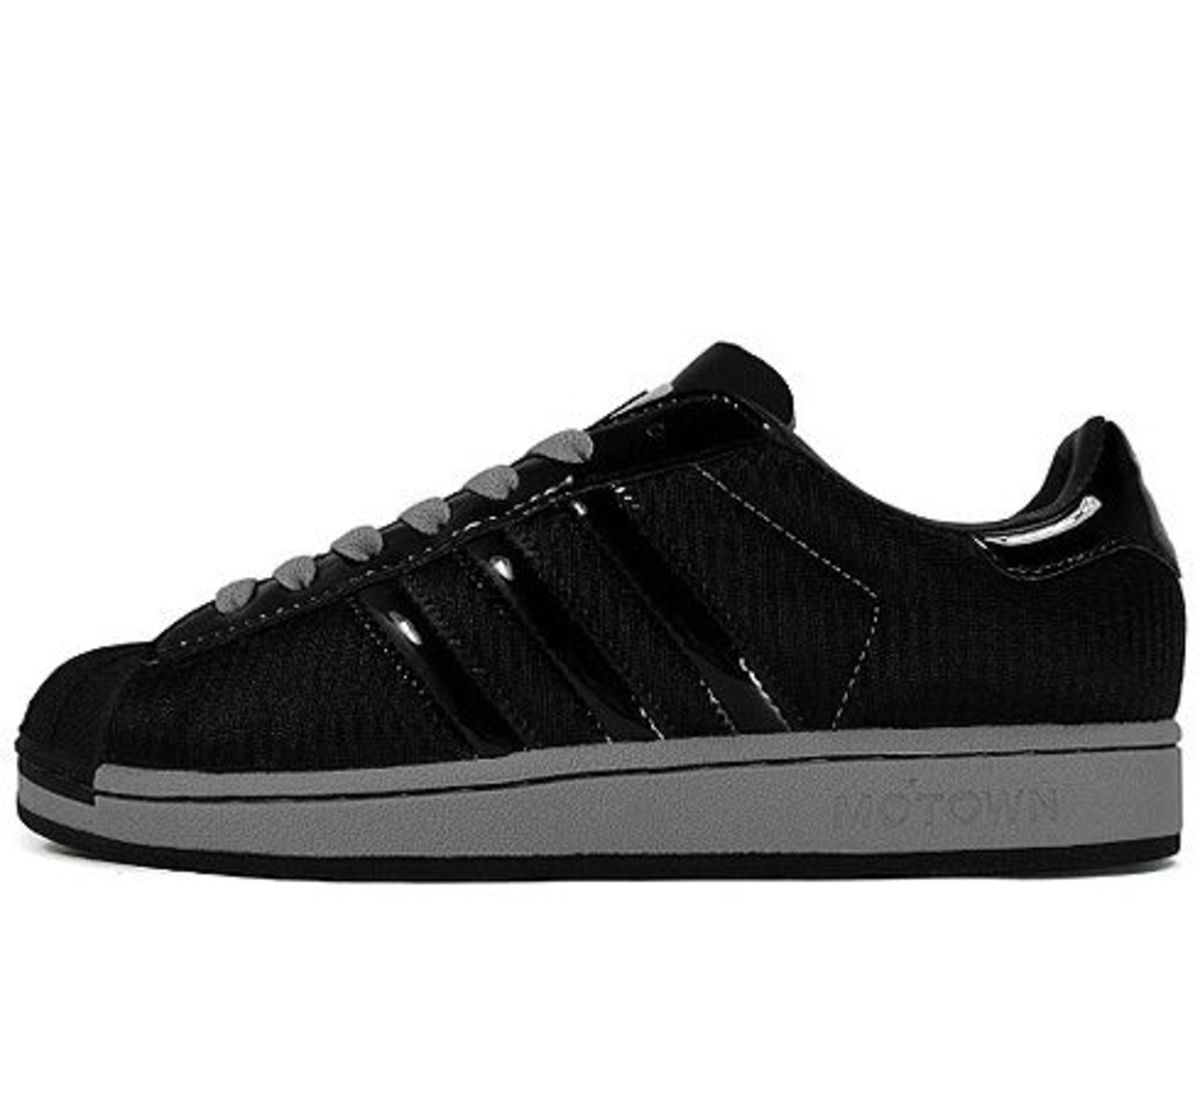 adidas - Motown Pack - Superstar